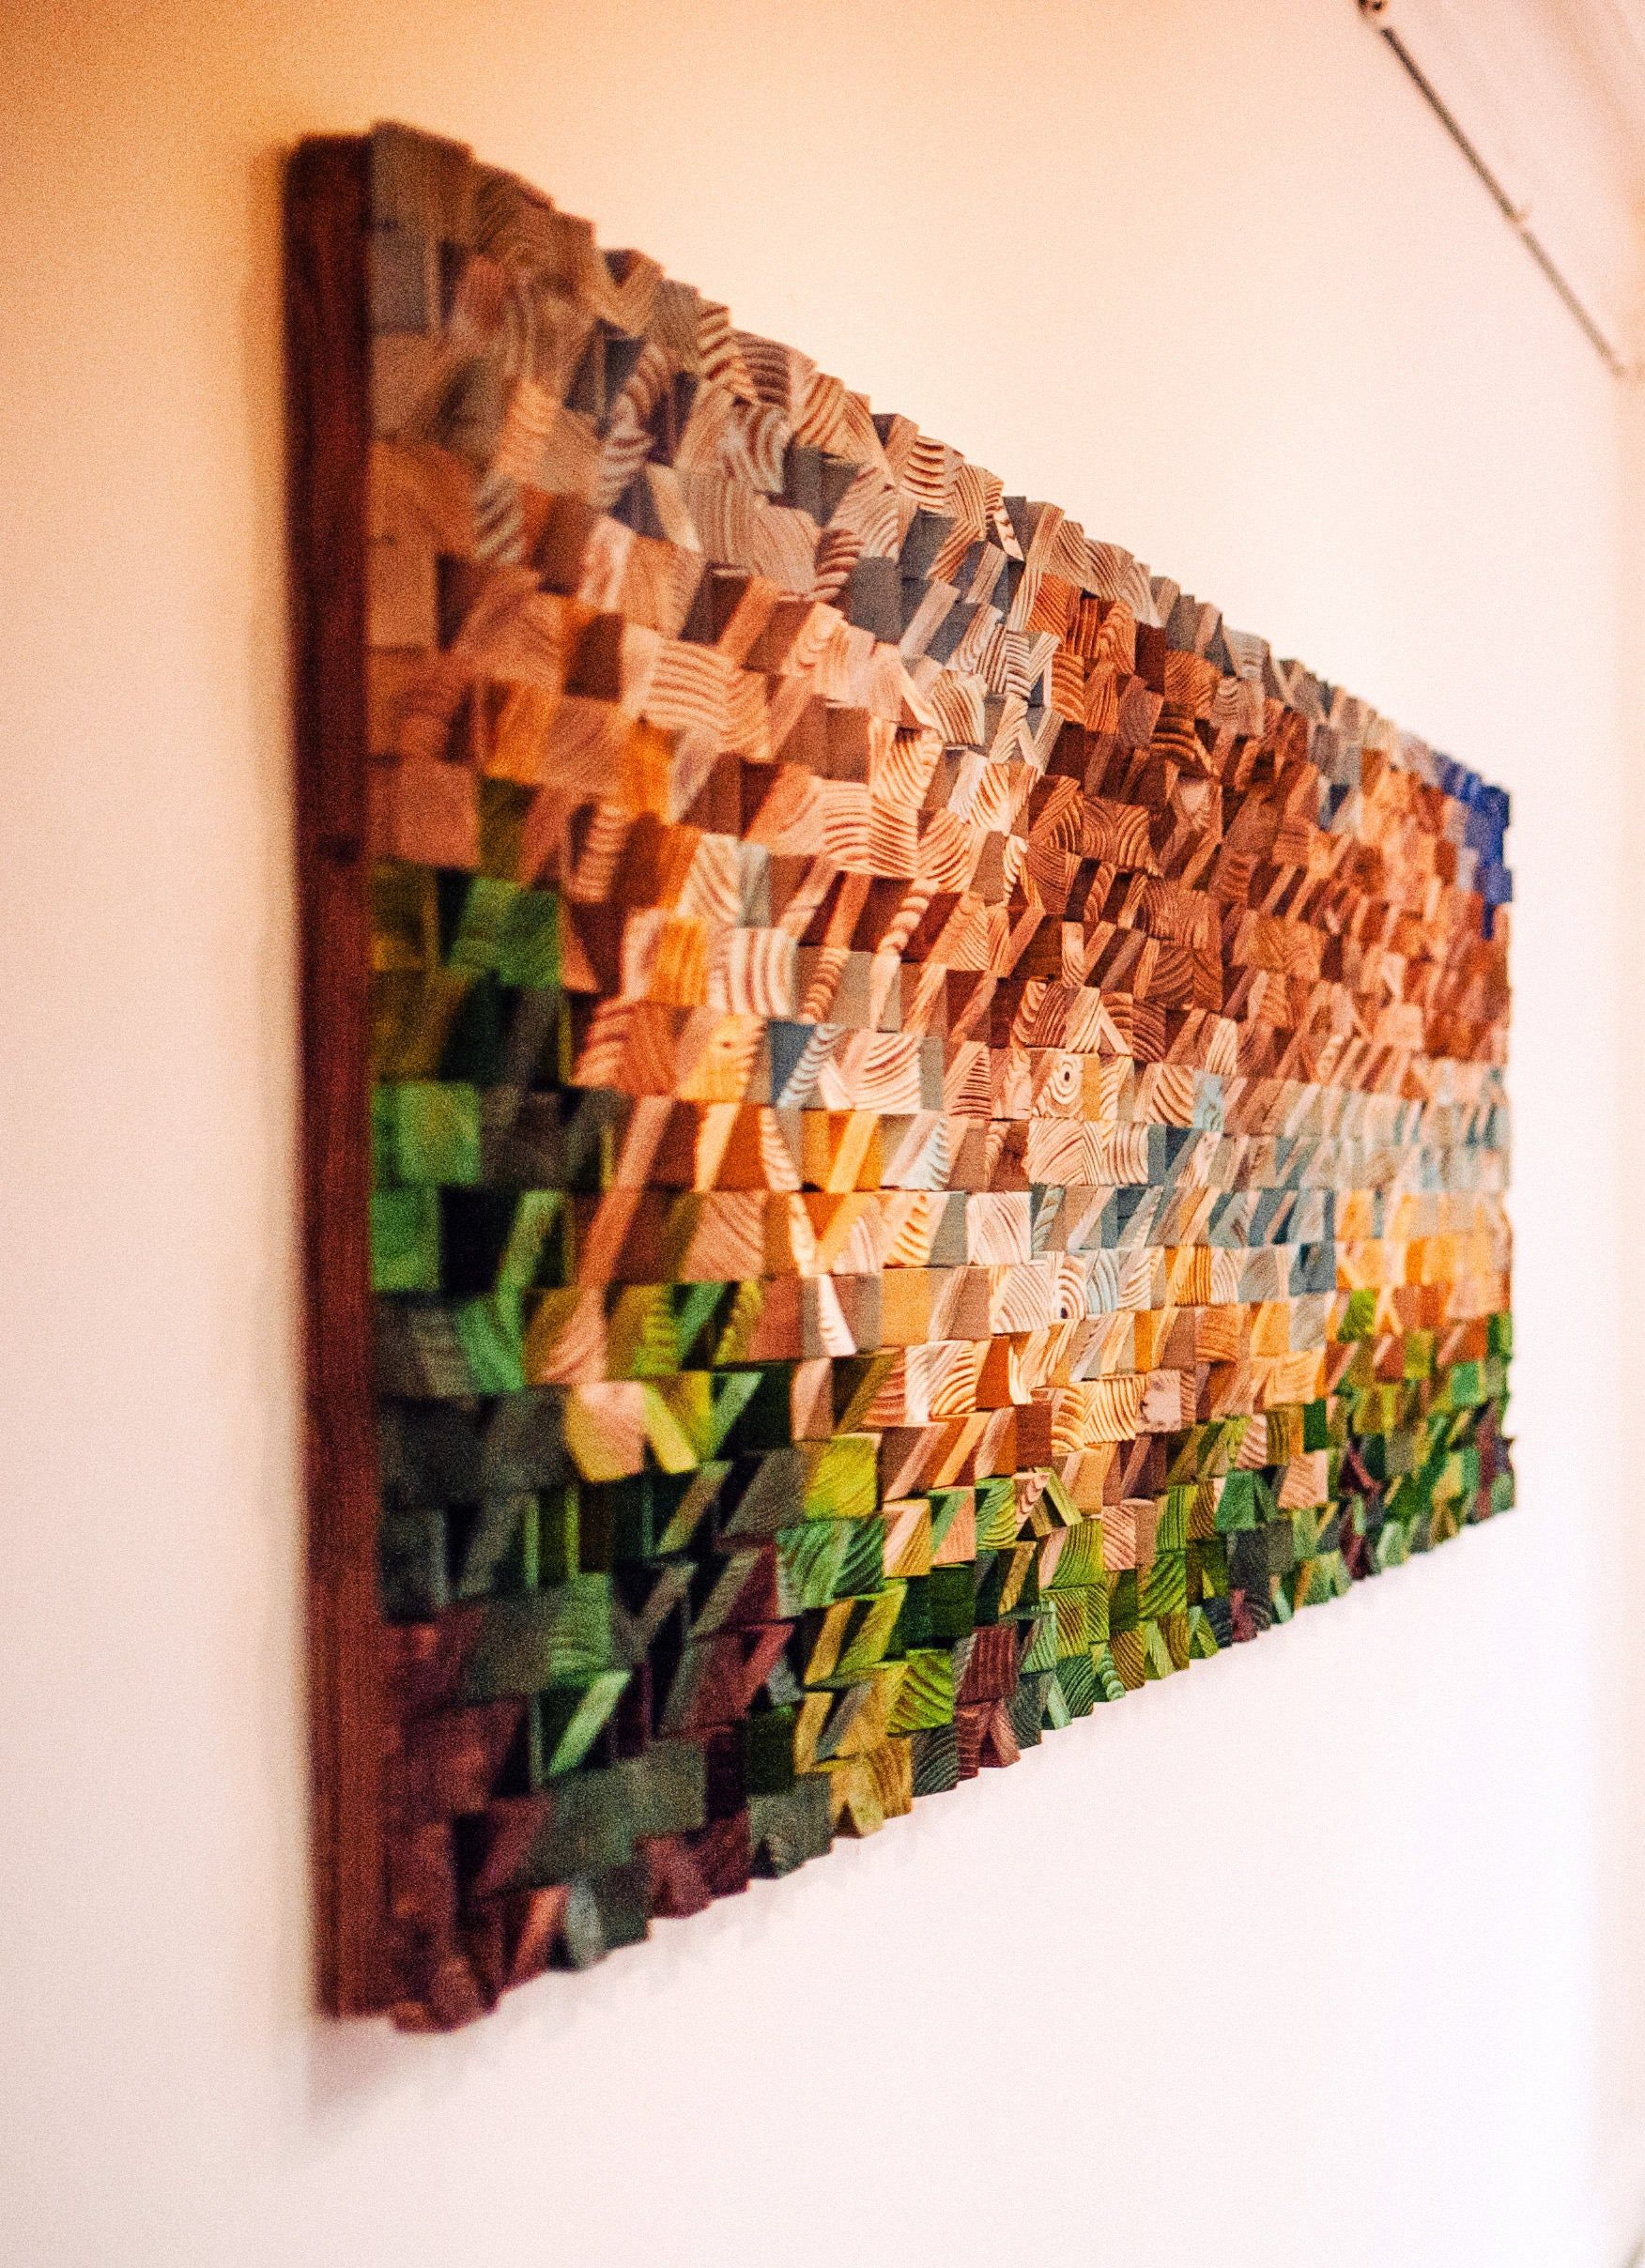 Reclaimed Wood Wall Art Wood Mosaic Painting On Wood Landscape In